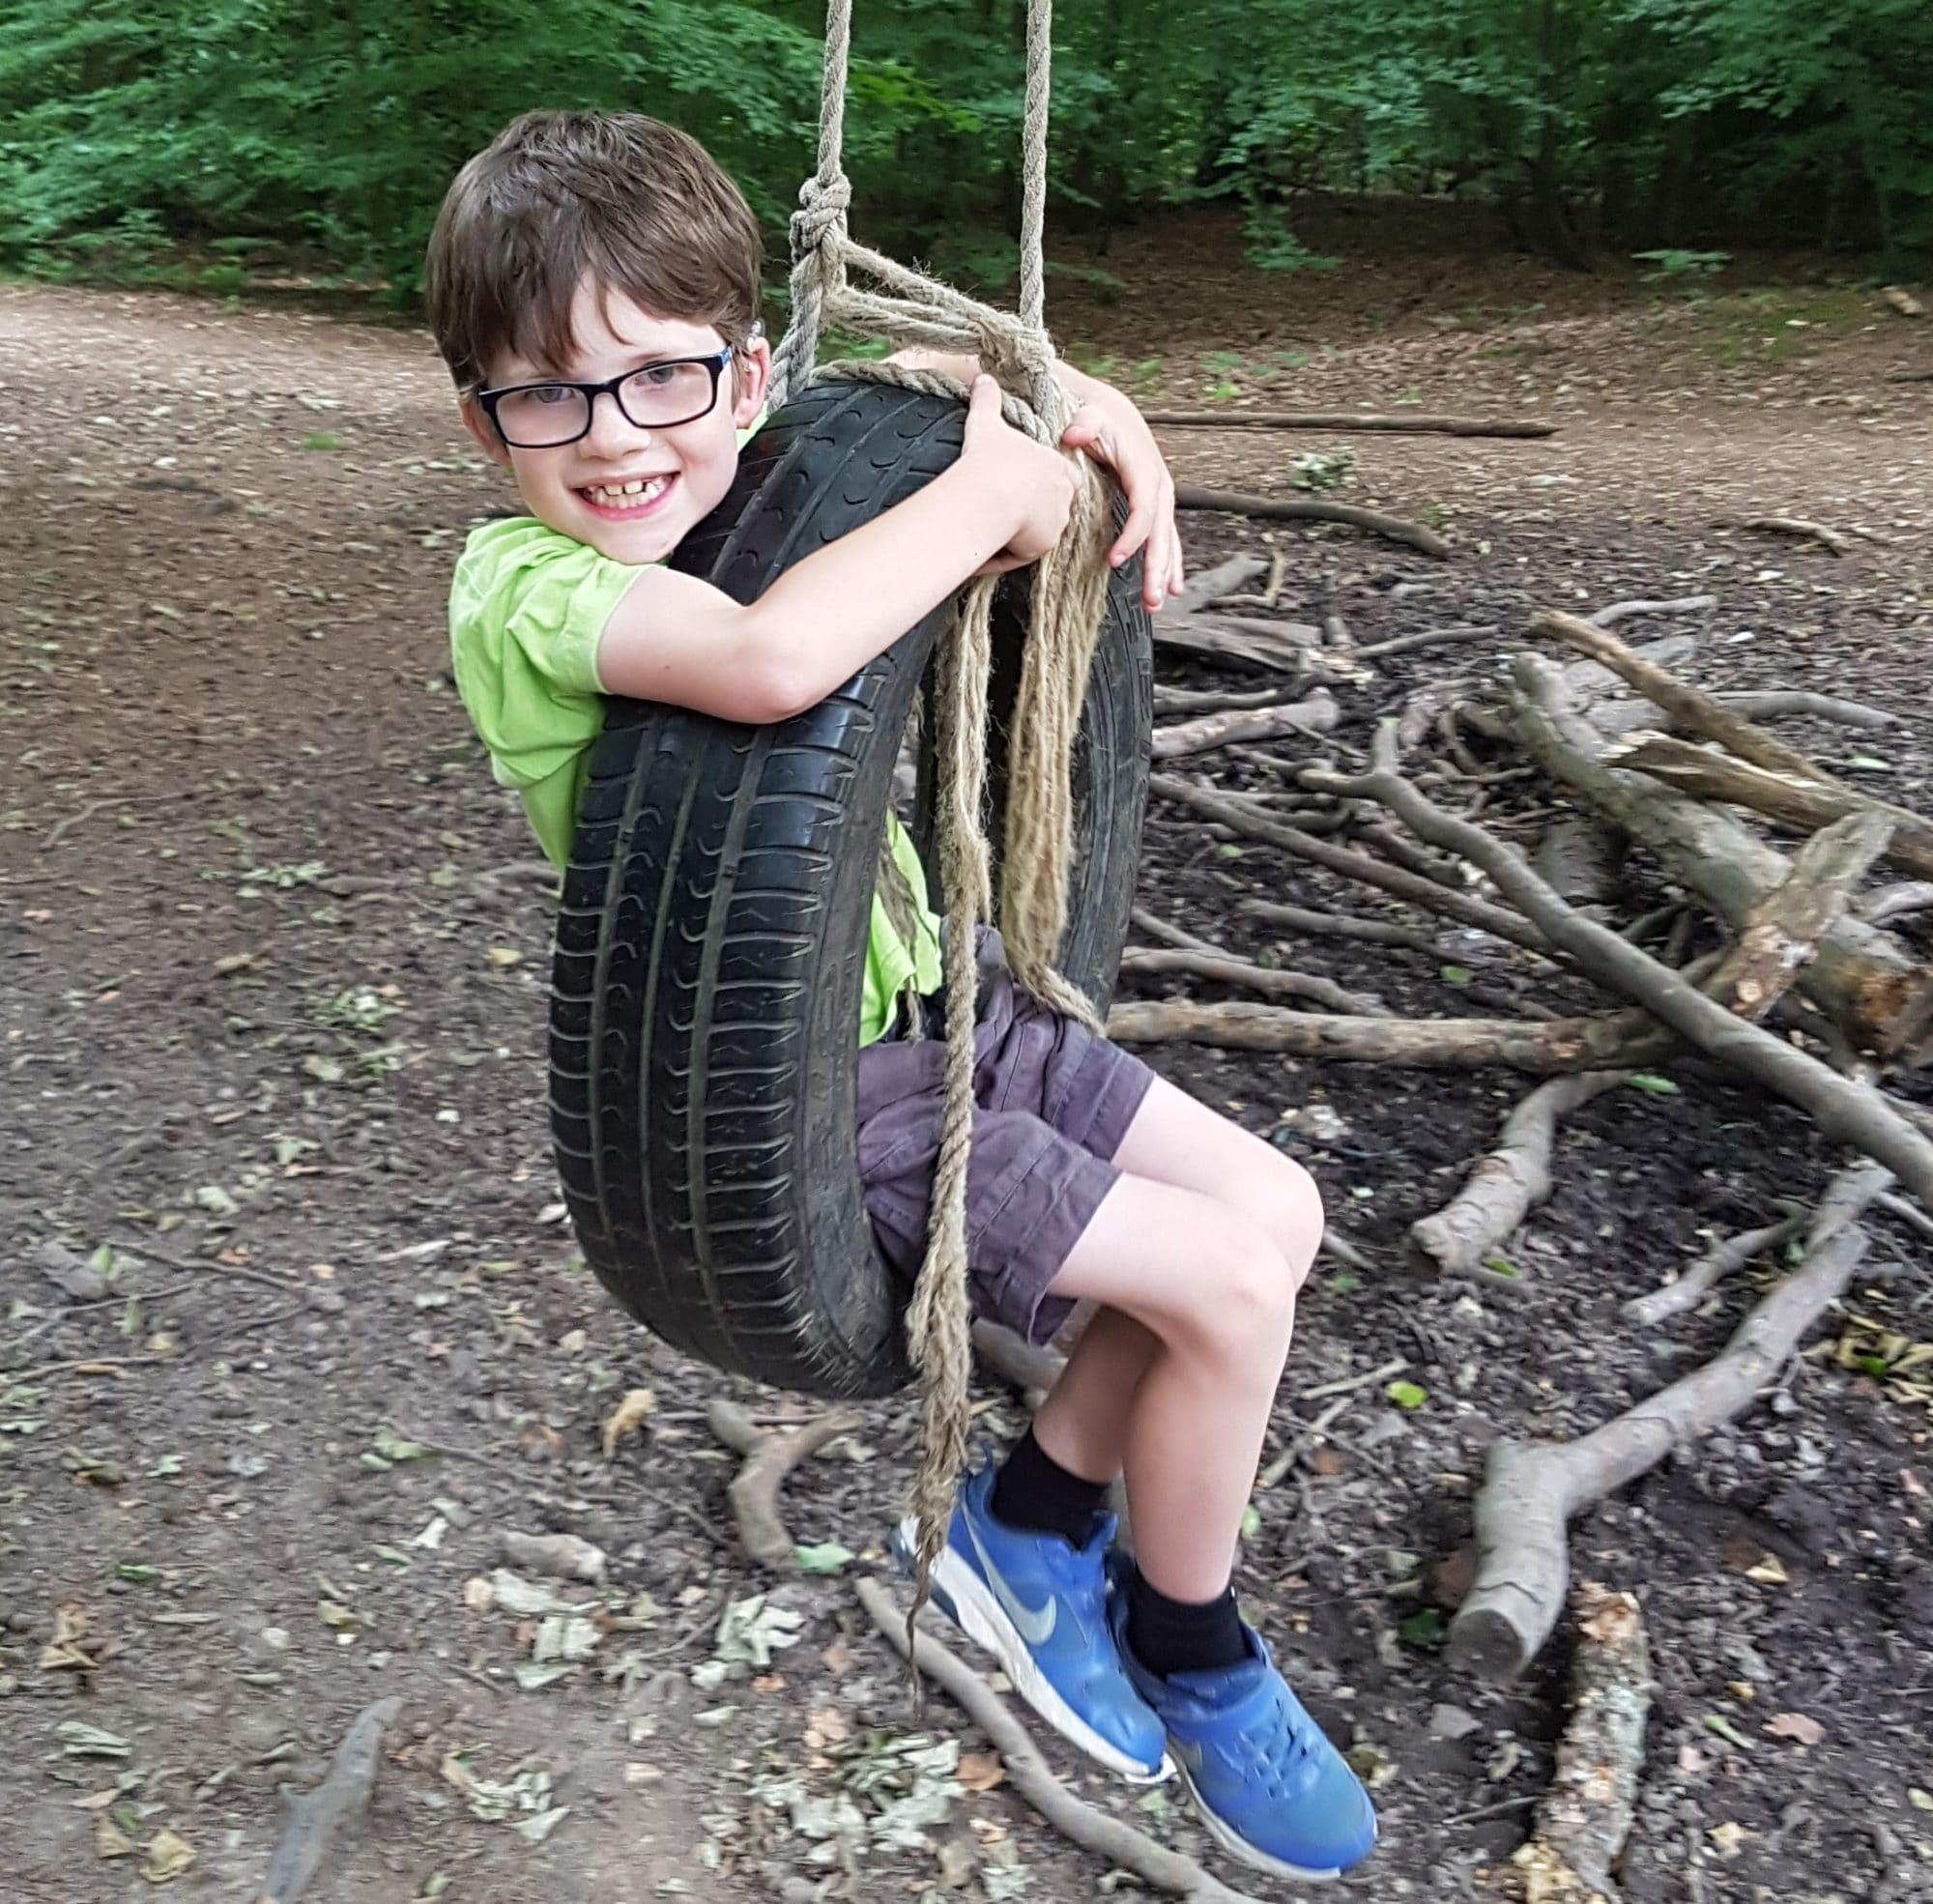 Boy smiling on rope swing